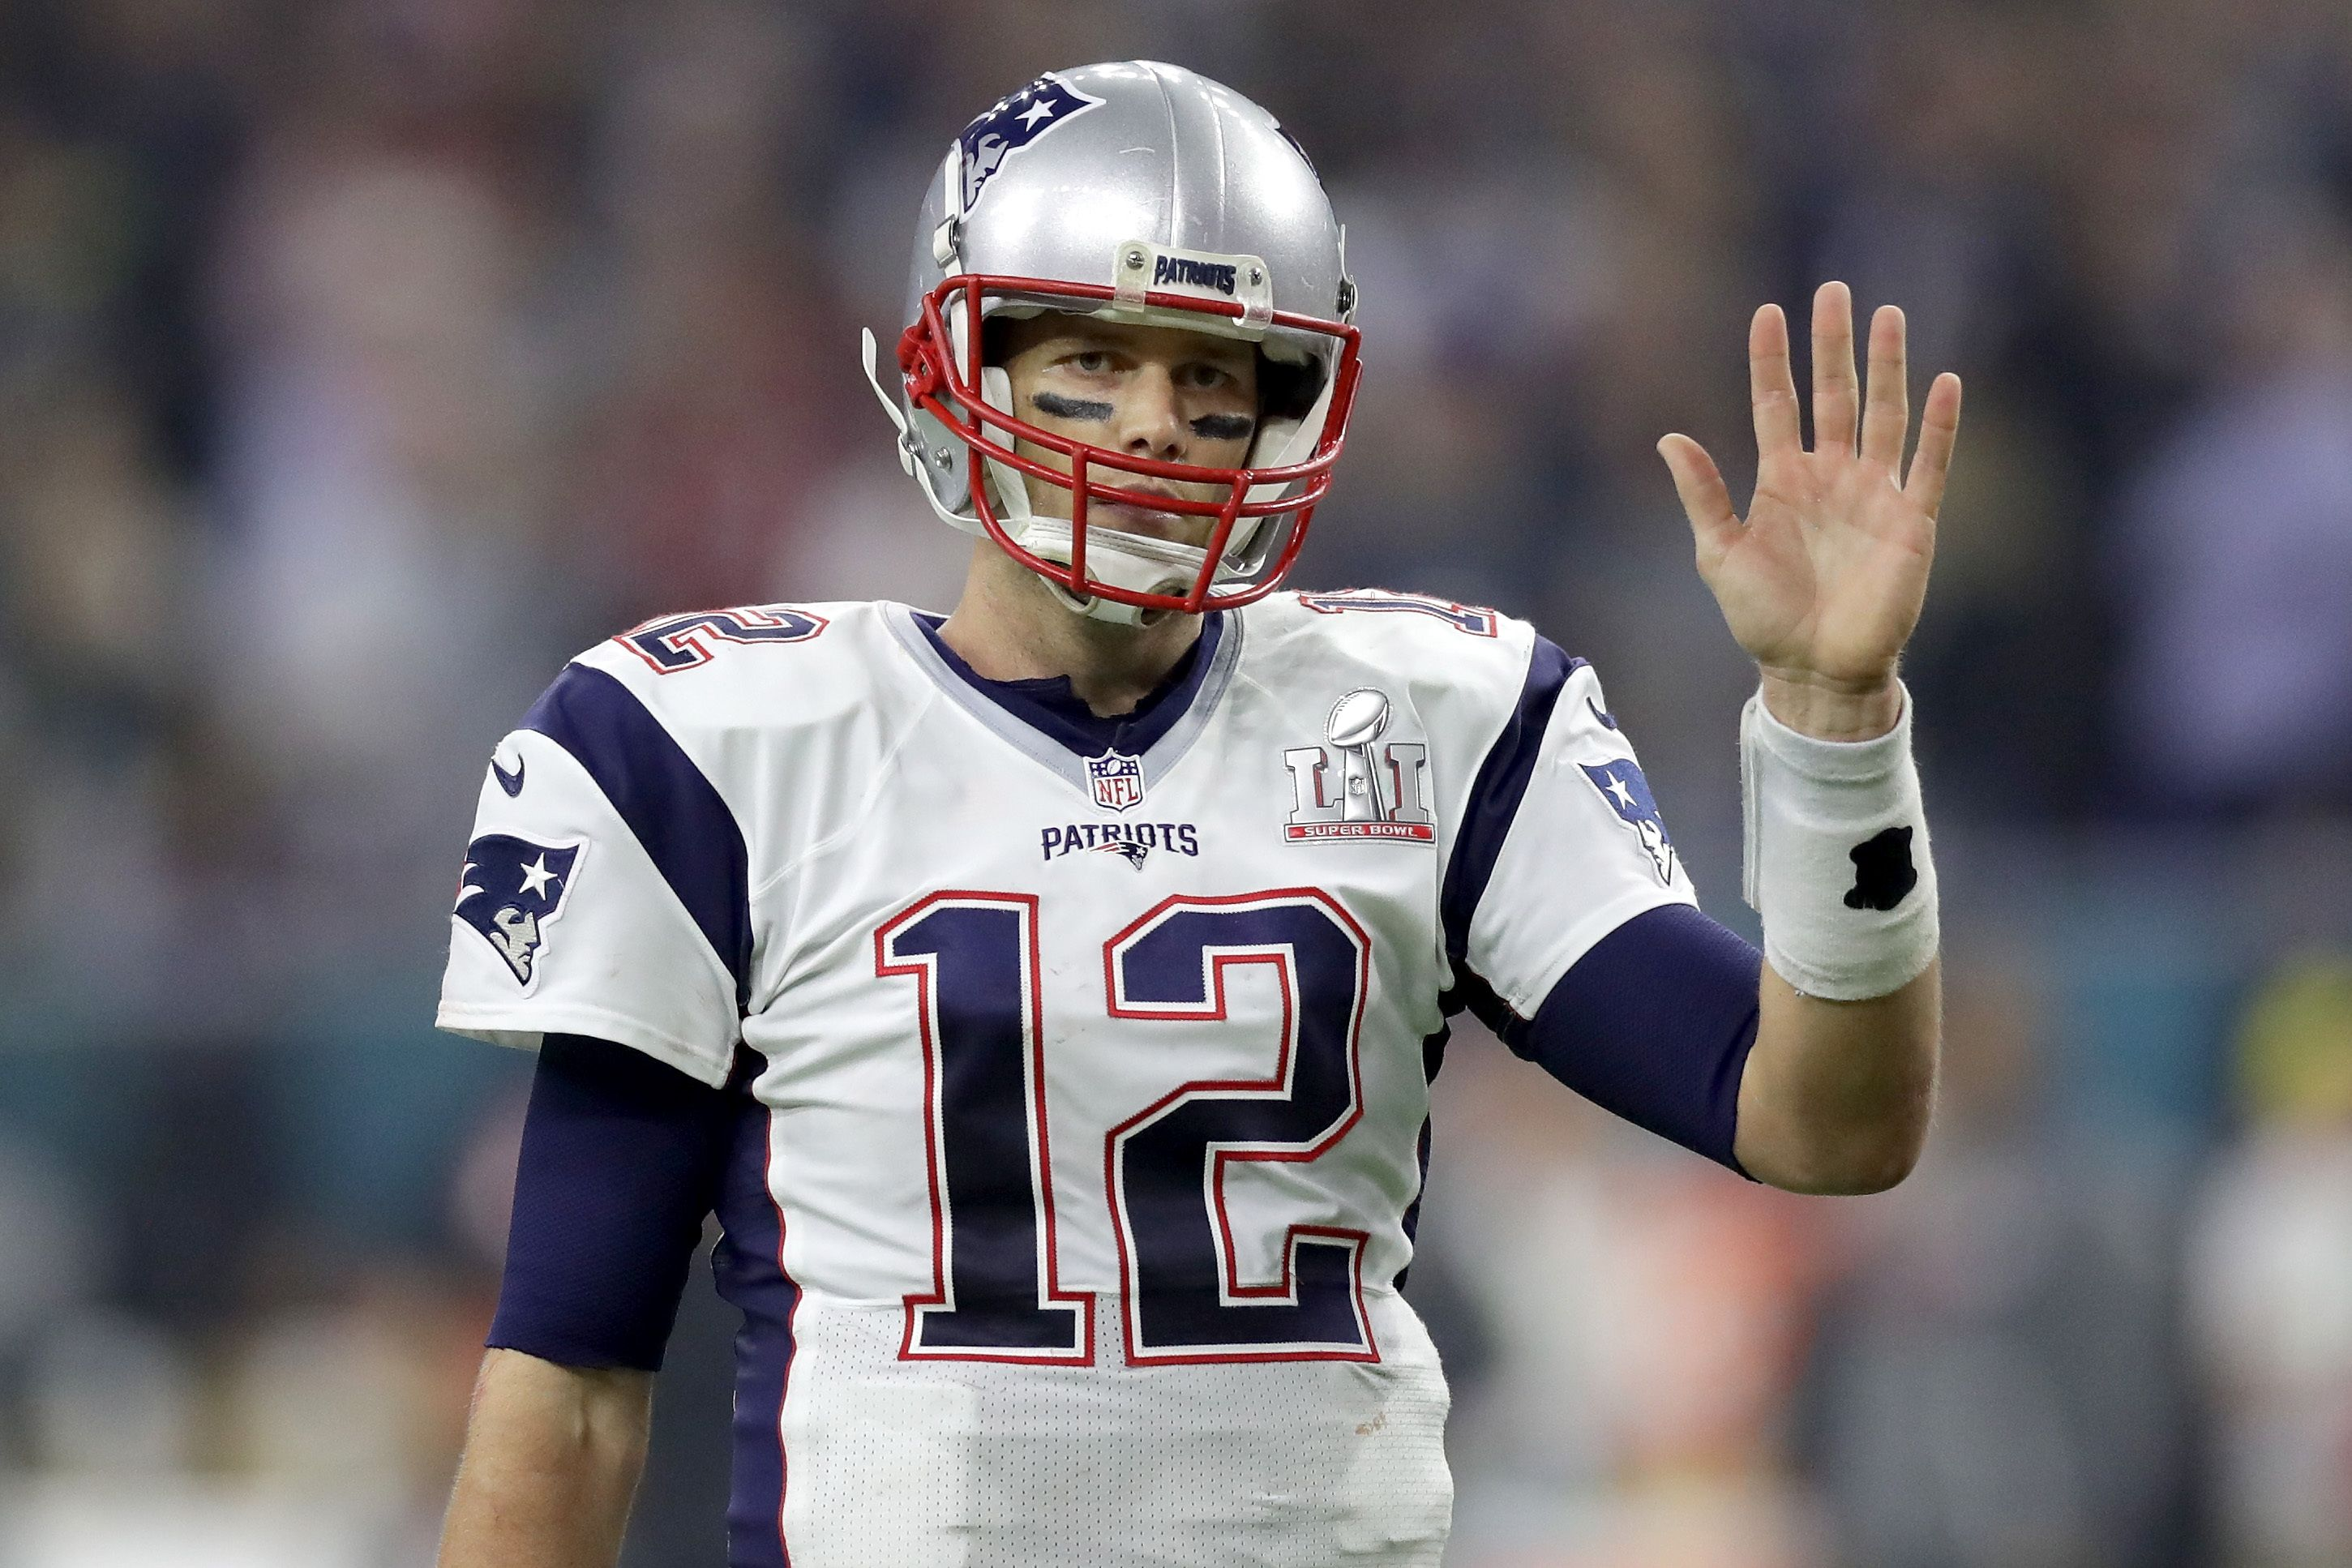 Tom Brady S Missing Super Bowl 51 Jersey Valued At 500 000 In Police Report Tom Brady New England Patriots Tom Brady Jersey